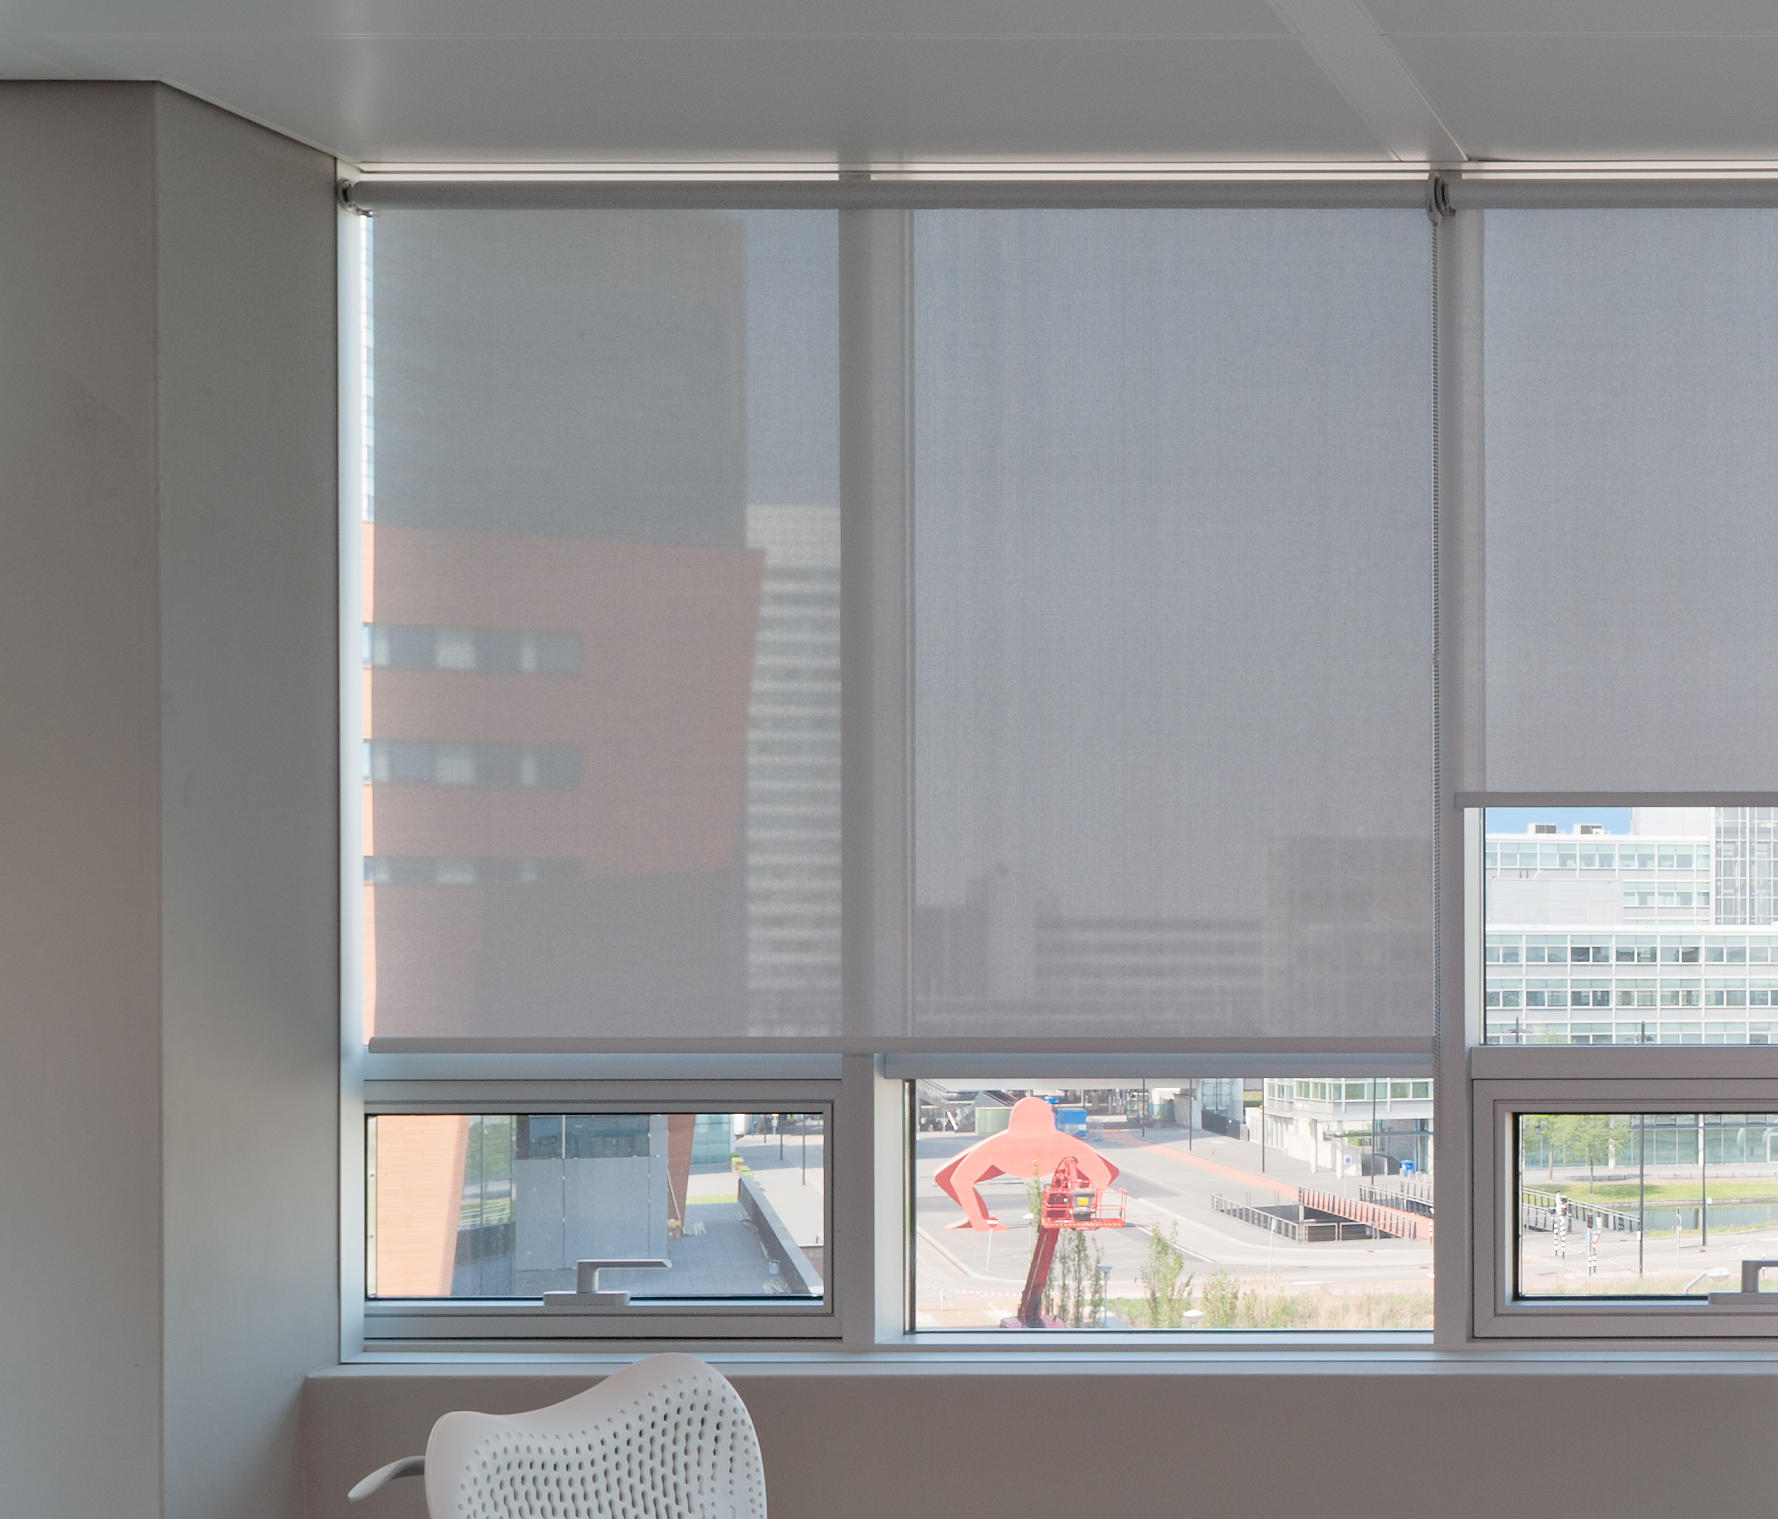 available douglass shadings top are bottom fashions hunter douglas up in brown product blinds easyrise down window configurations den ruffell silhouette